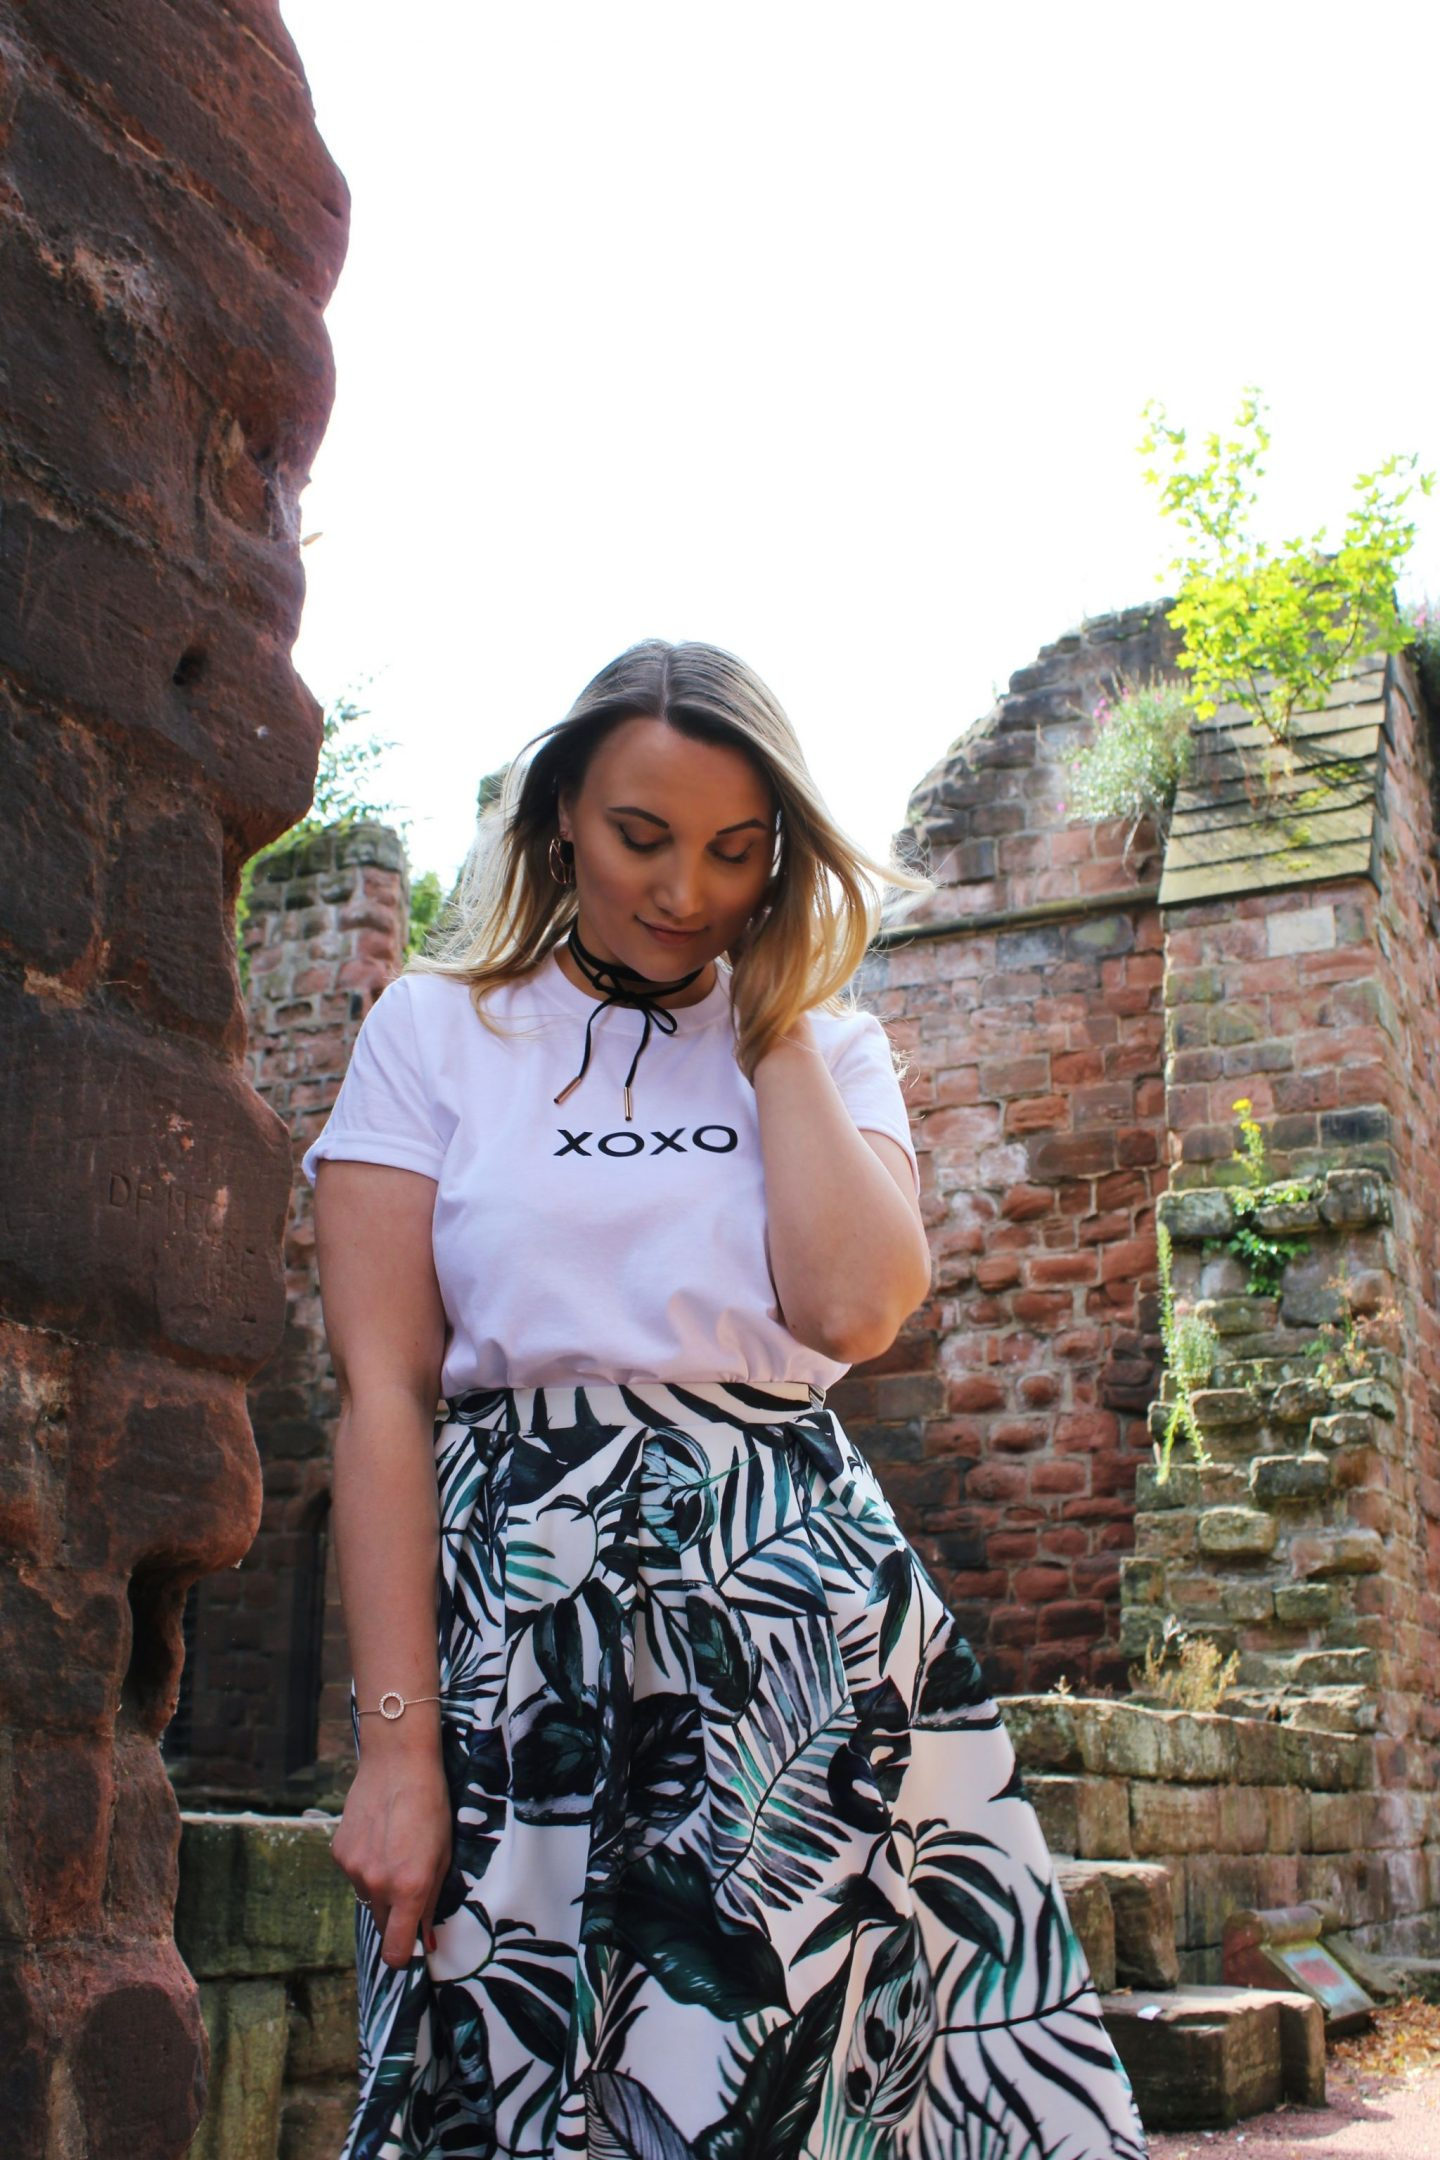 Boohoo xoxo t-shirt, Boohoo palm print Raya skirt OOTD - Miel and Mint blog